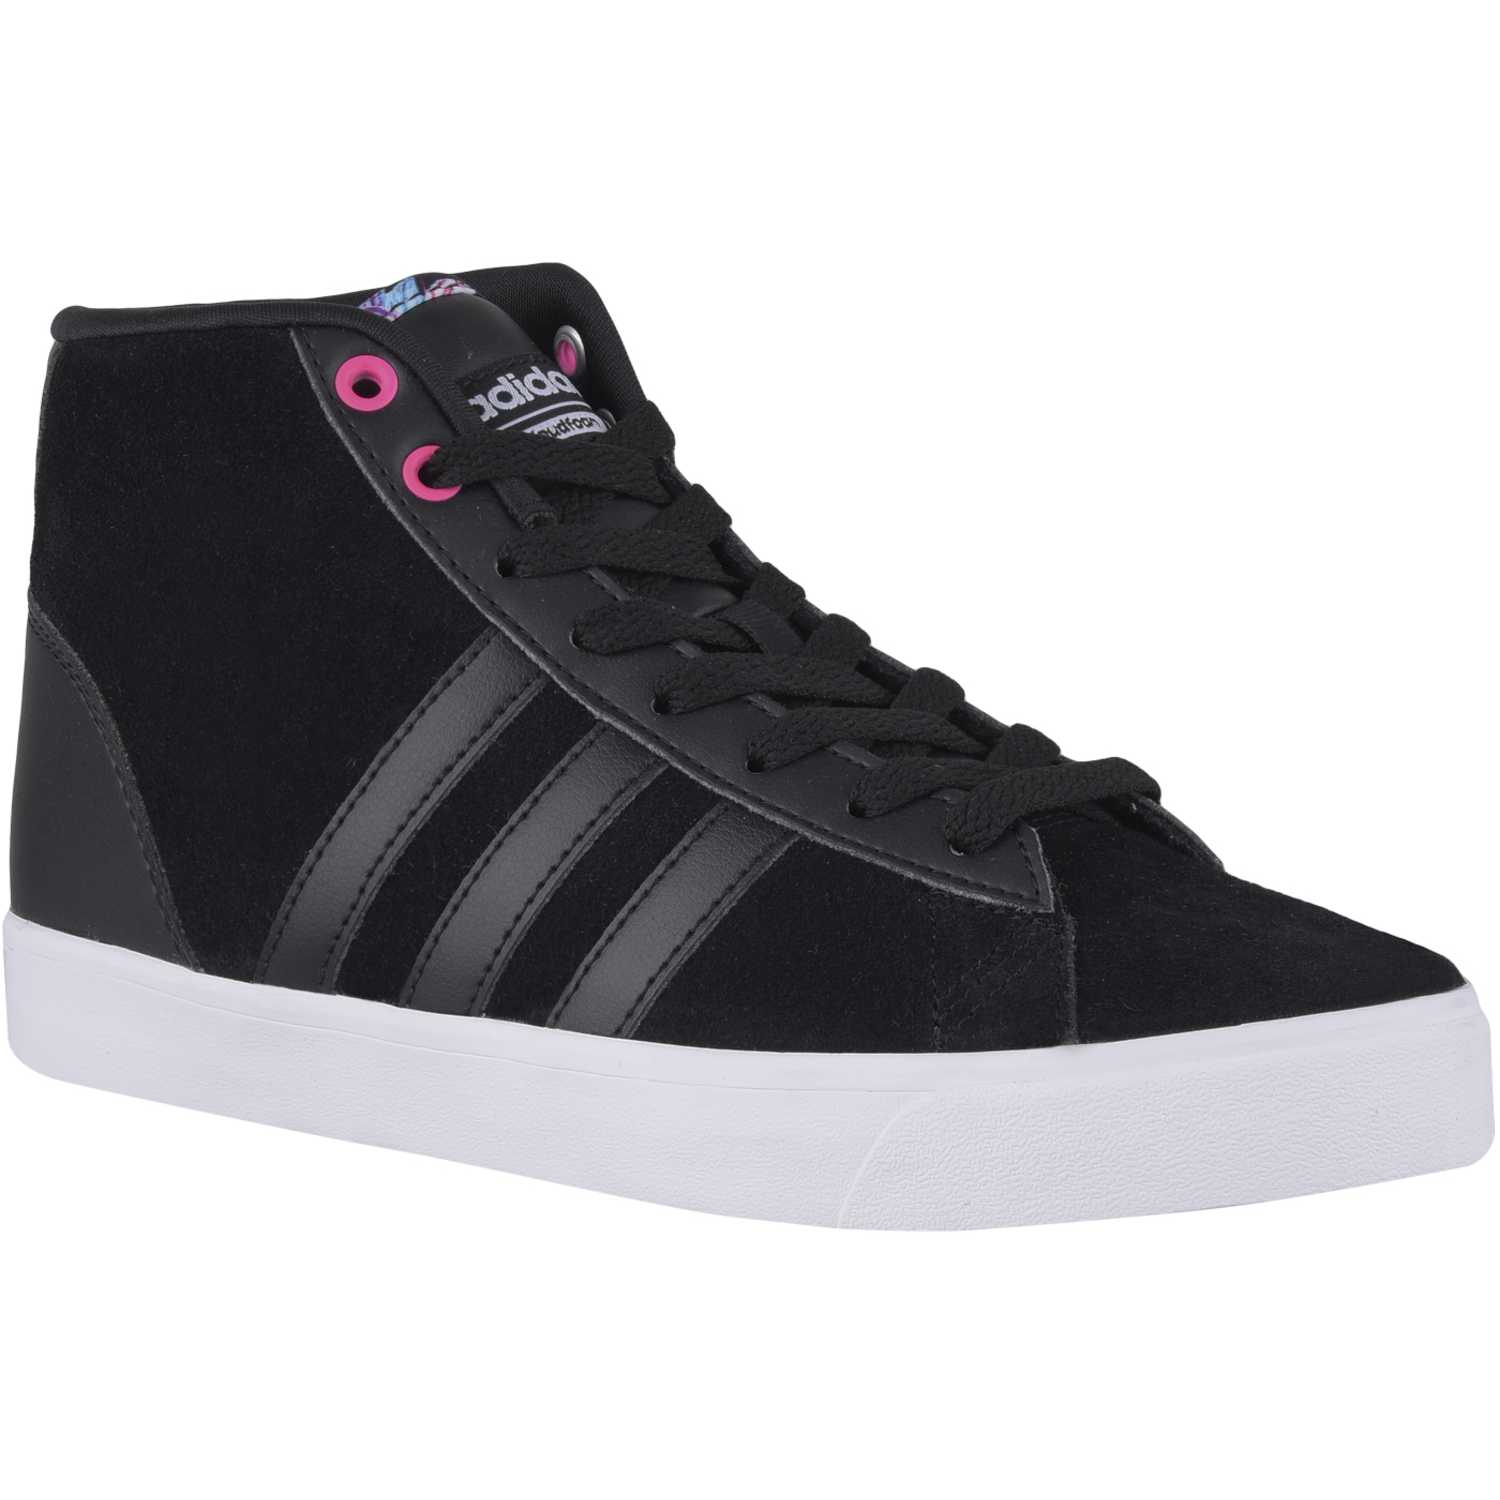 the latest 6a903 5d578 Zapatilla de Mujer adidas NEO Negro  blanco cloudfoam daily qt mid w